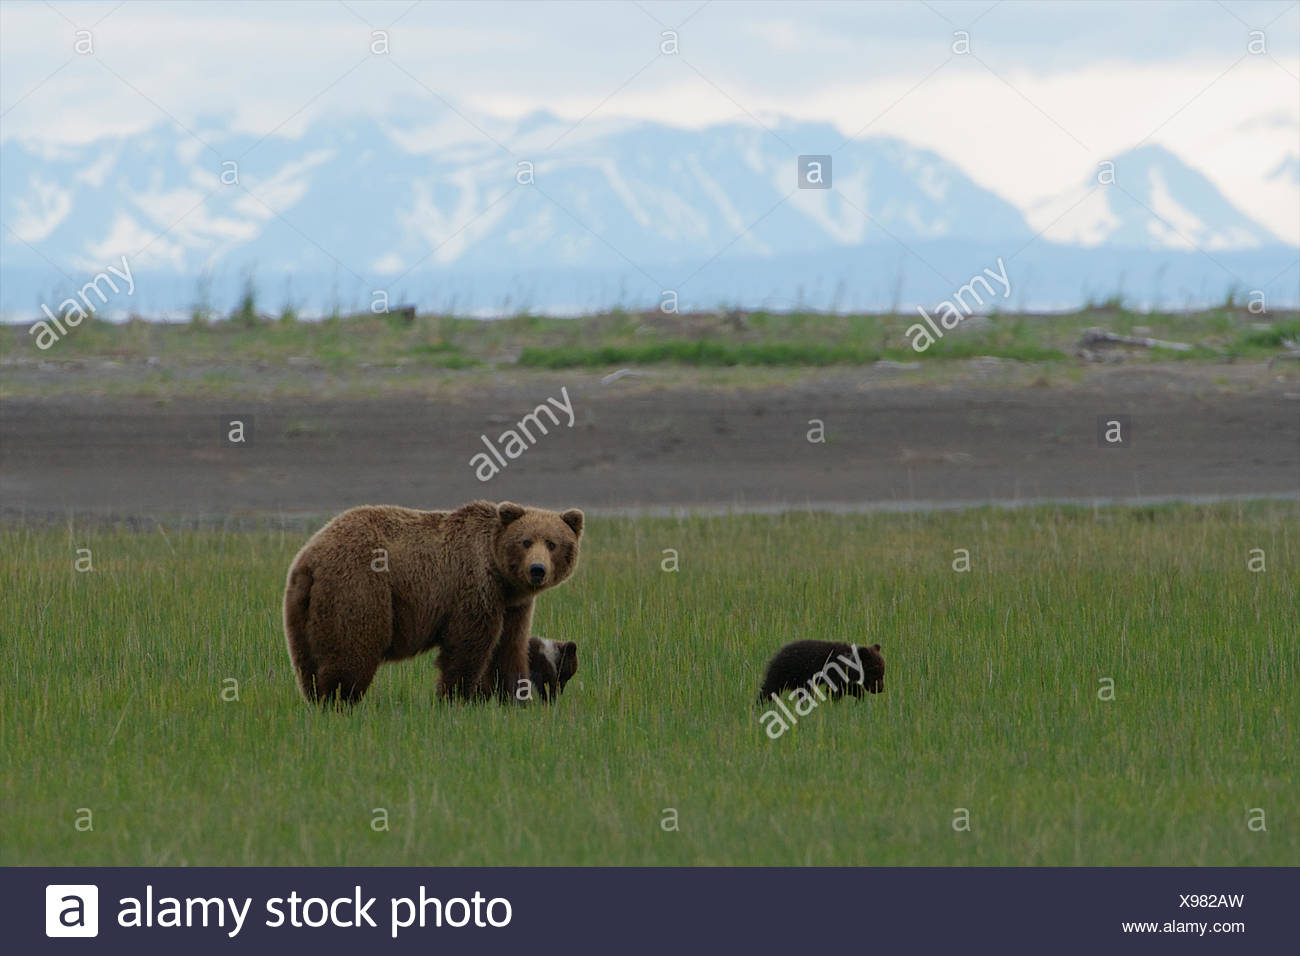 a grizzly bear family